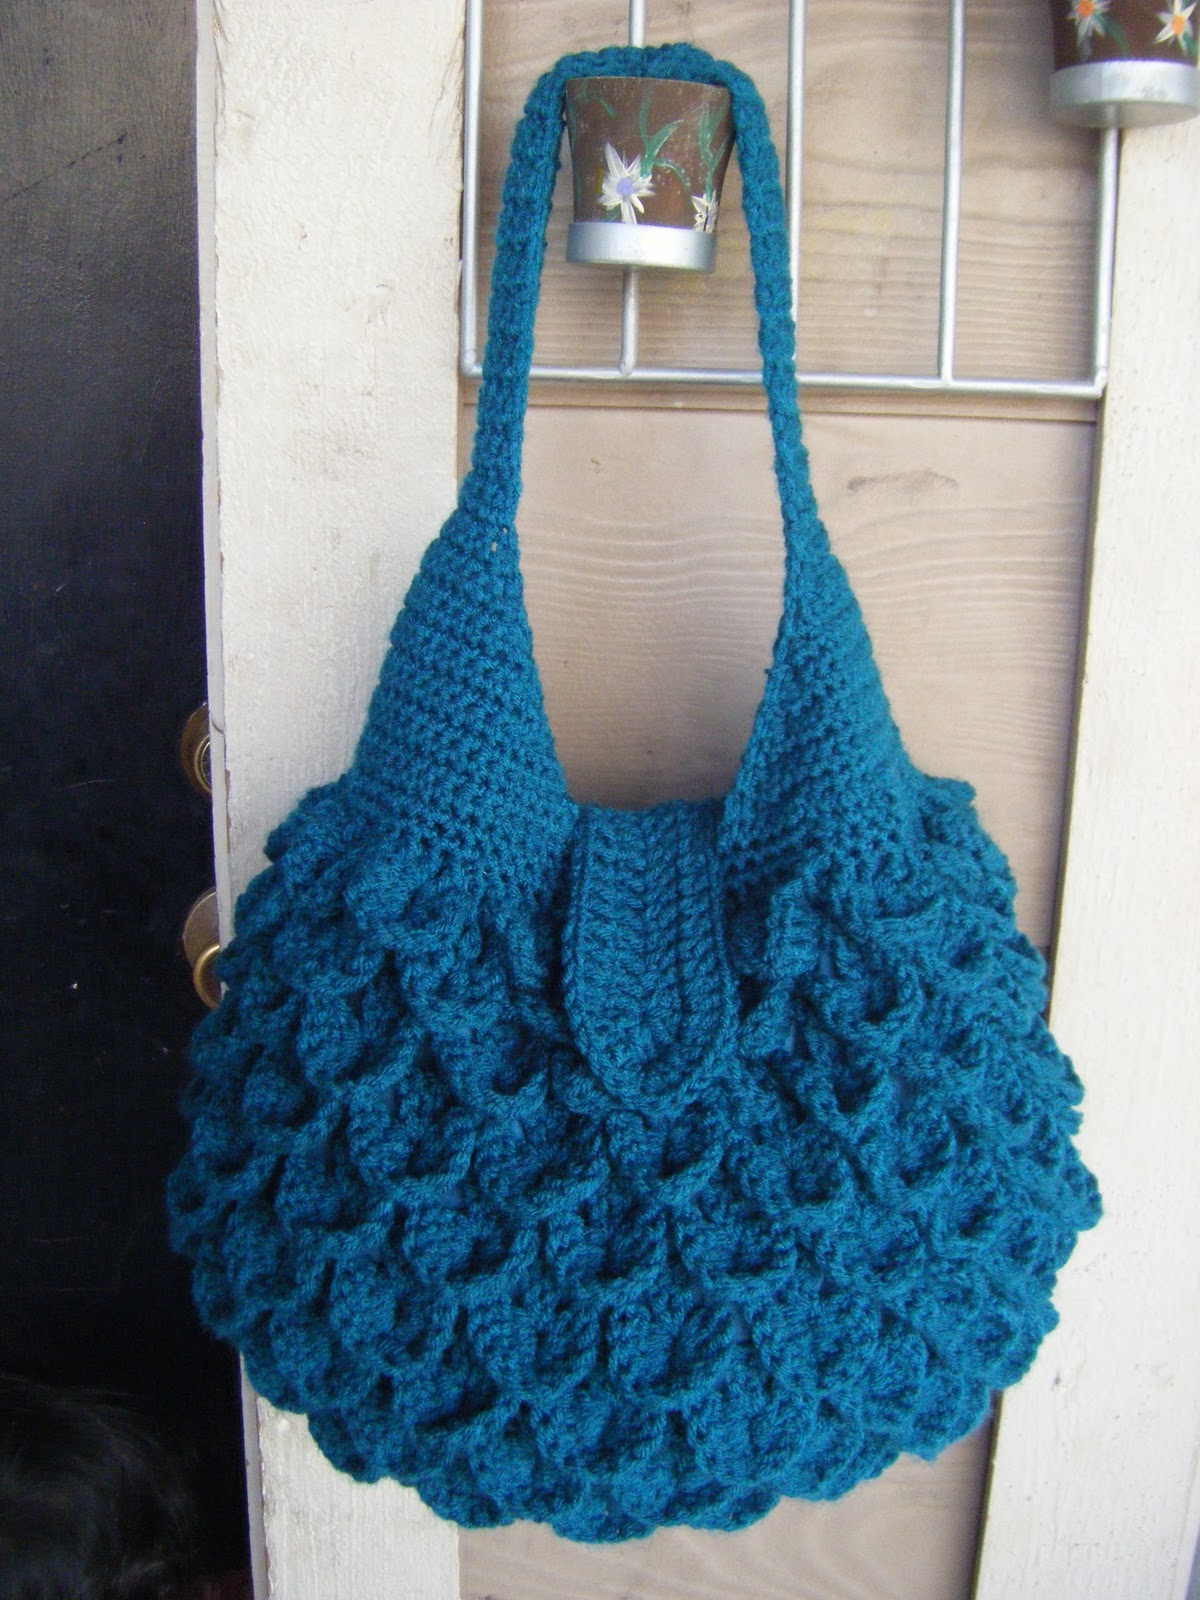 Free Crochet Handbag Patterns : Free Purse Crochet Patterns, Free Bag Crochet Patterns from our